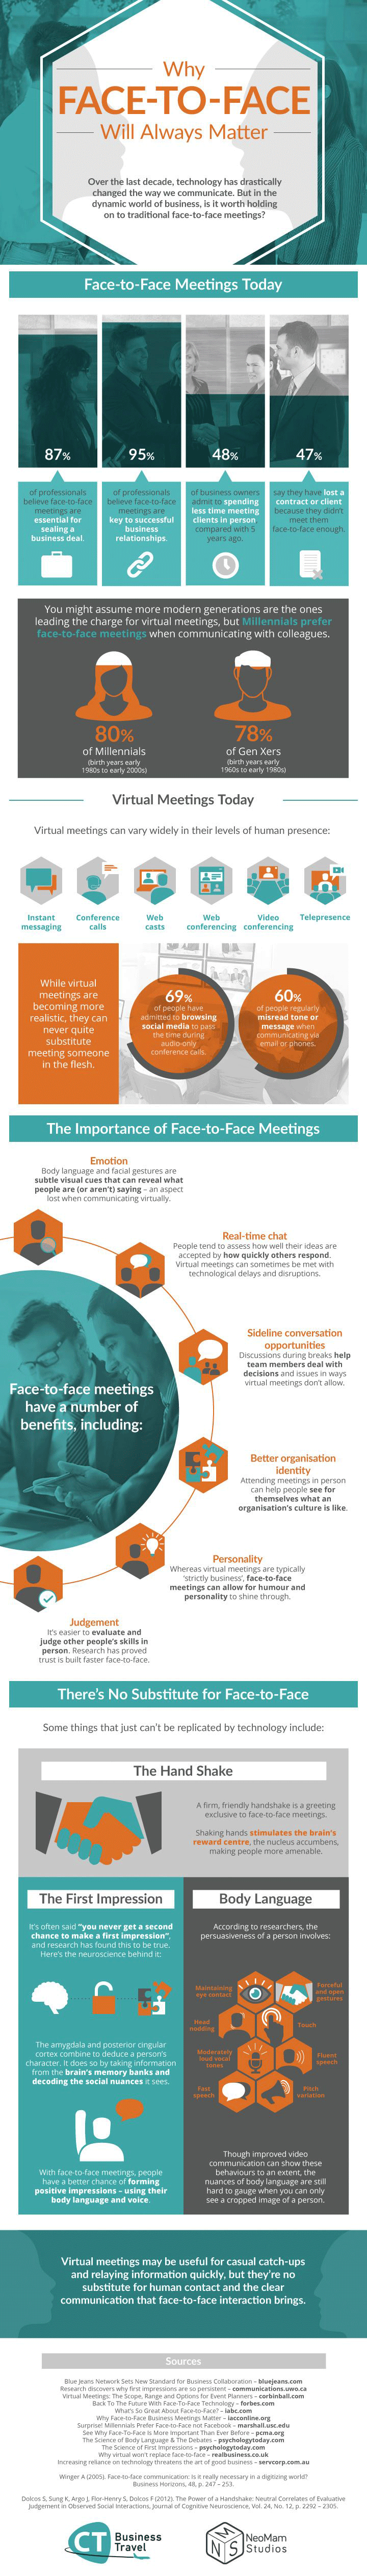 Infographic Face to face meeting